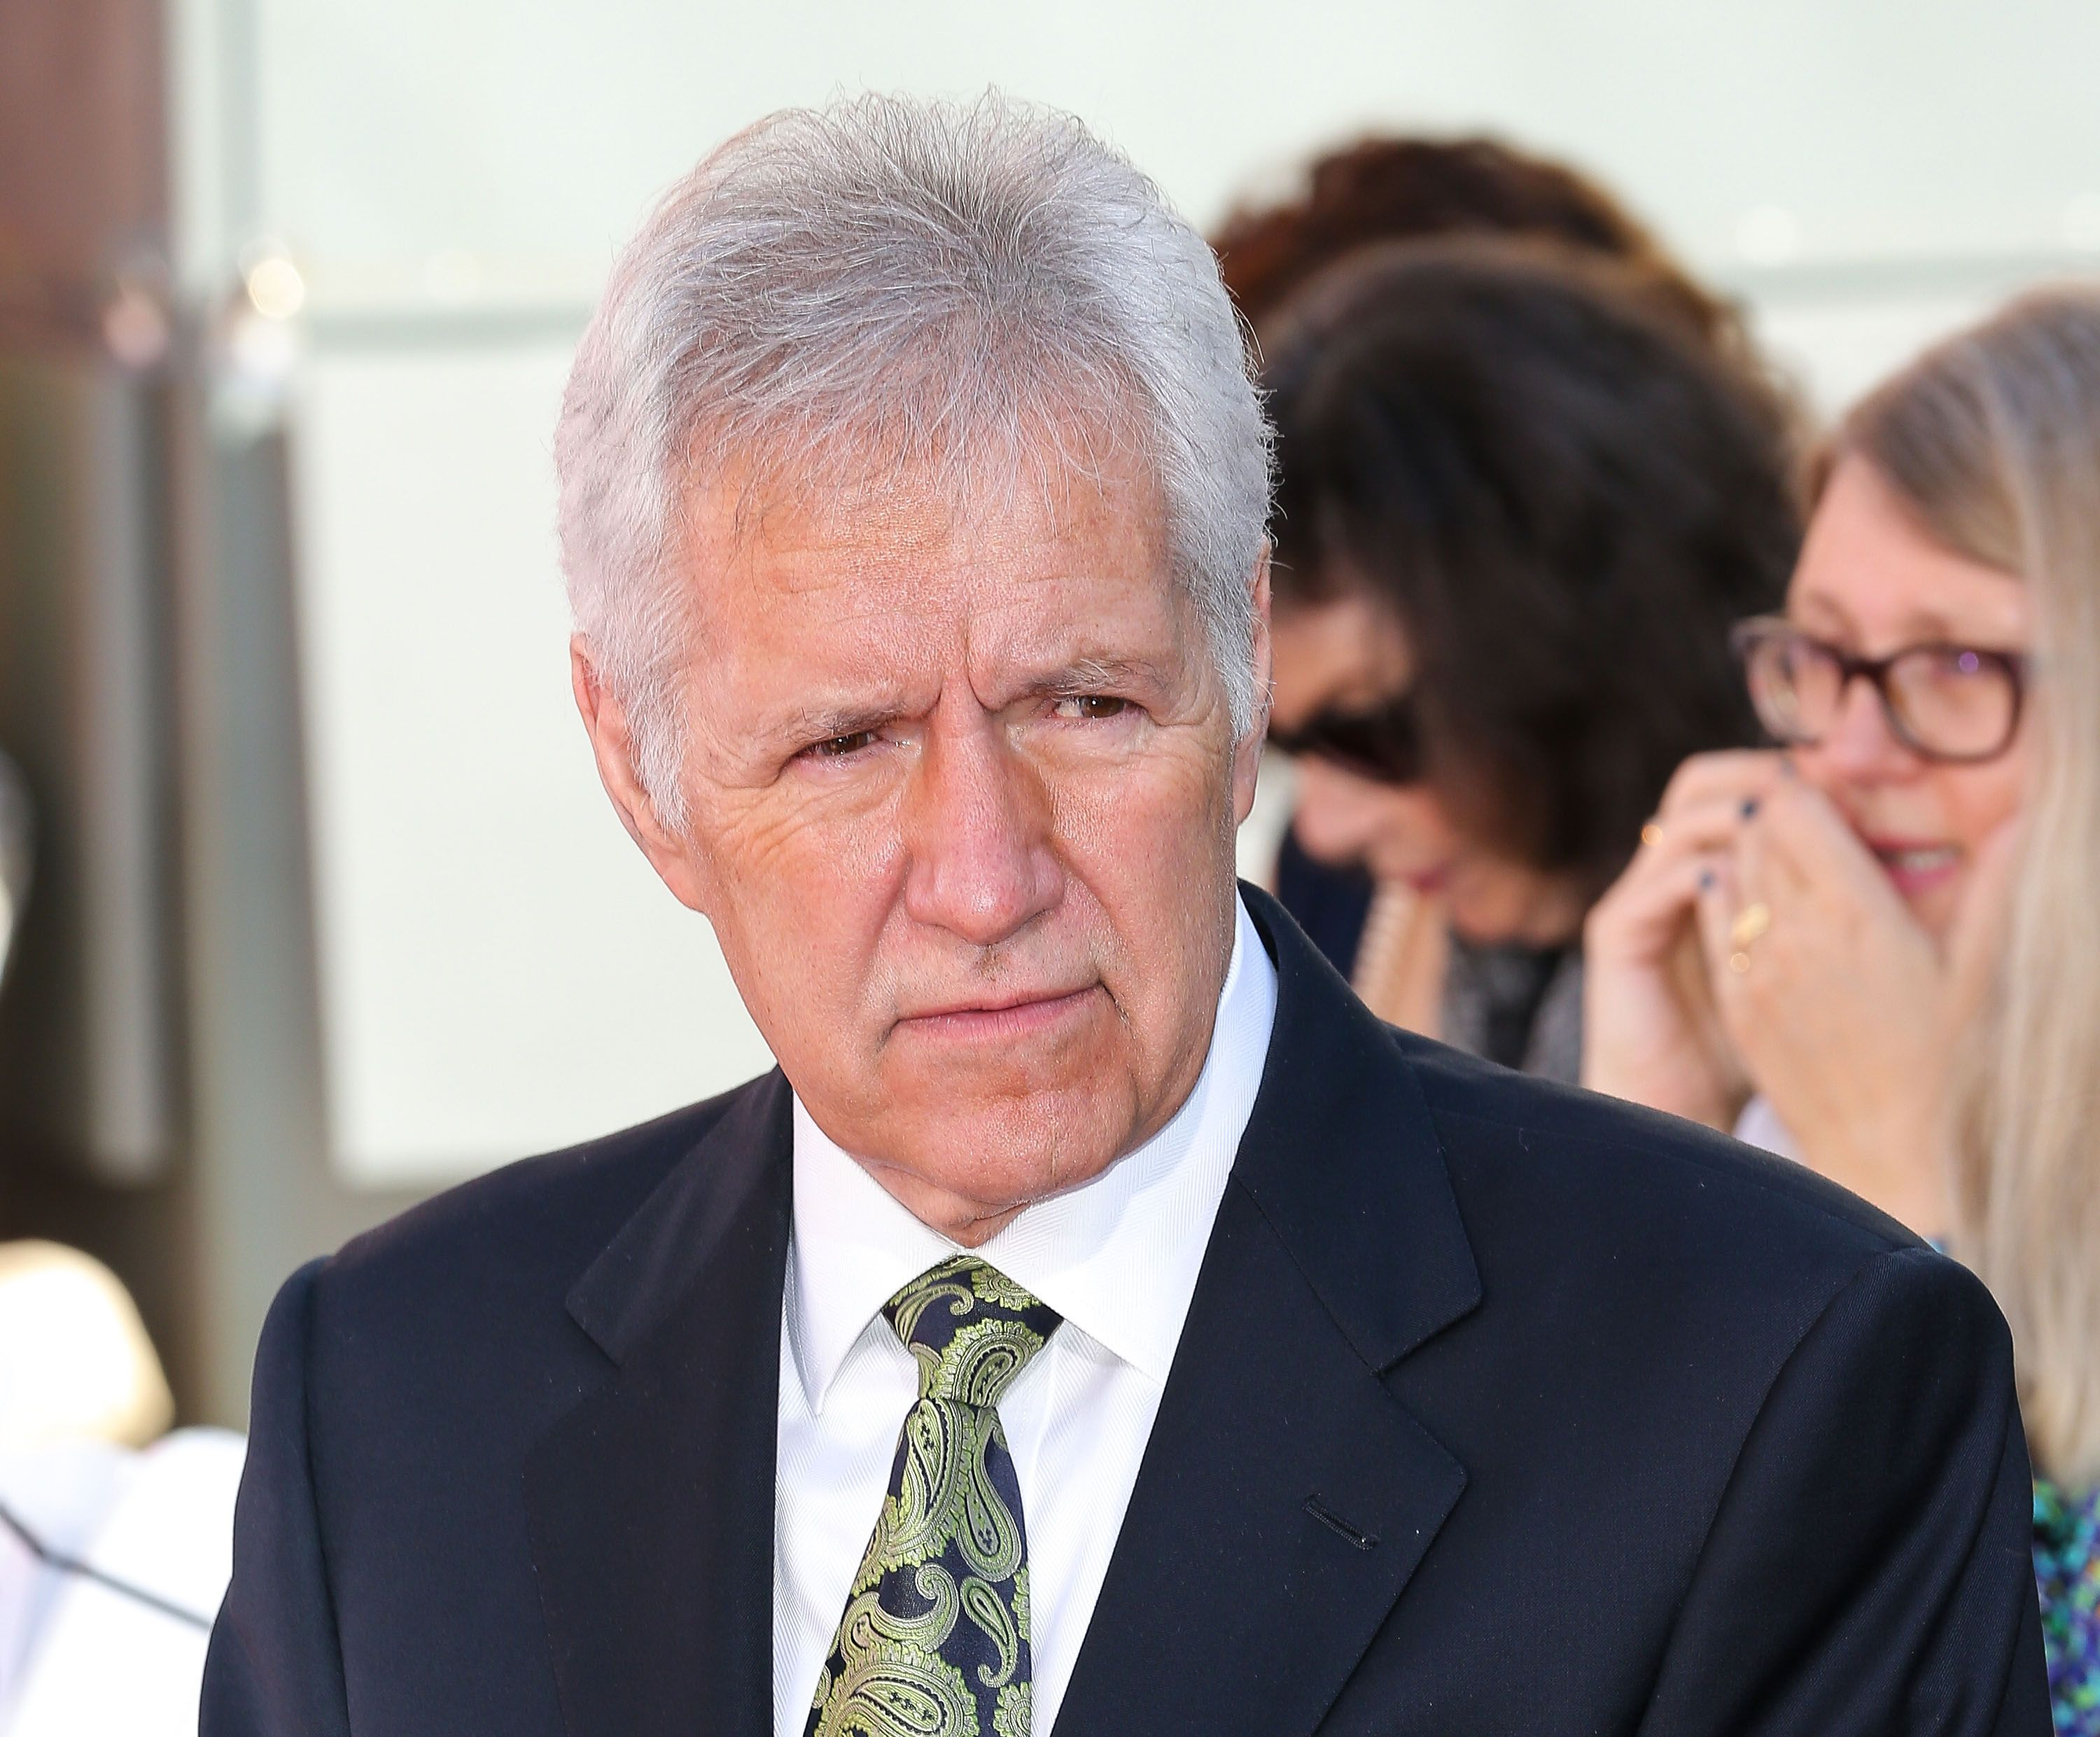 Alex Trebek at the TCM hand and footprint ceremony of  Christopher Plummer on March 27, 2015 | Photo: Getty Images